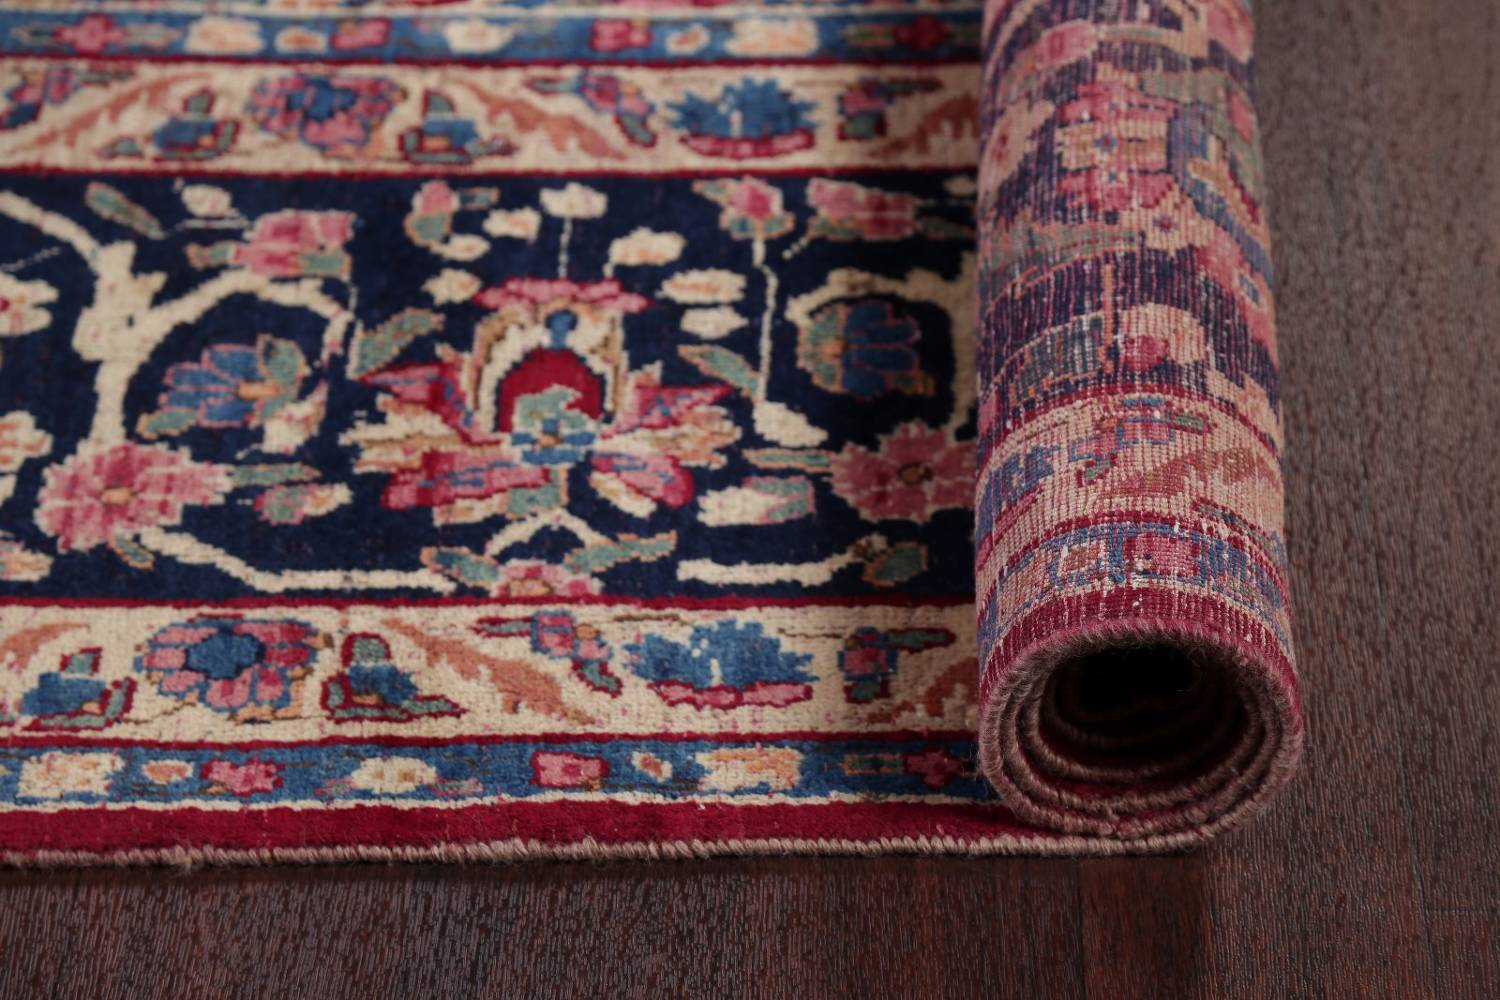 All-Over Floral 11x16 Yazd Persian Area Rug image 23